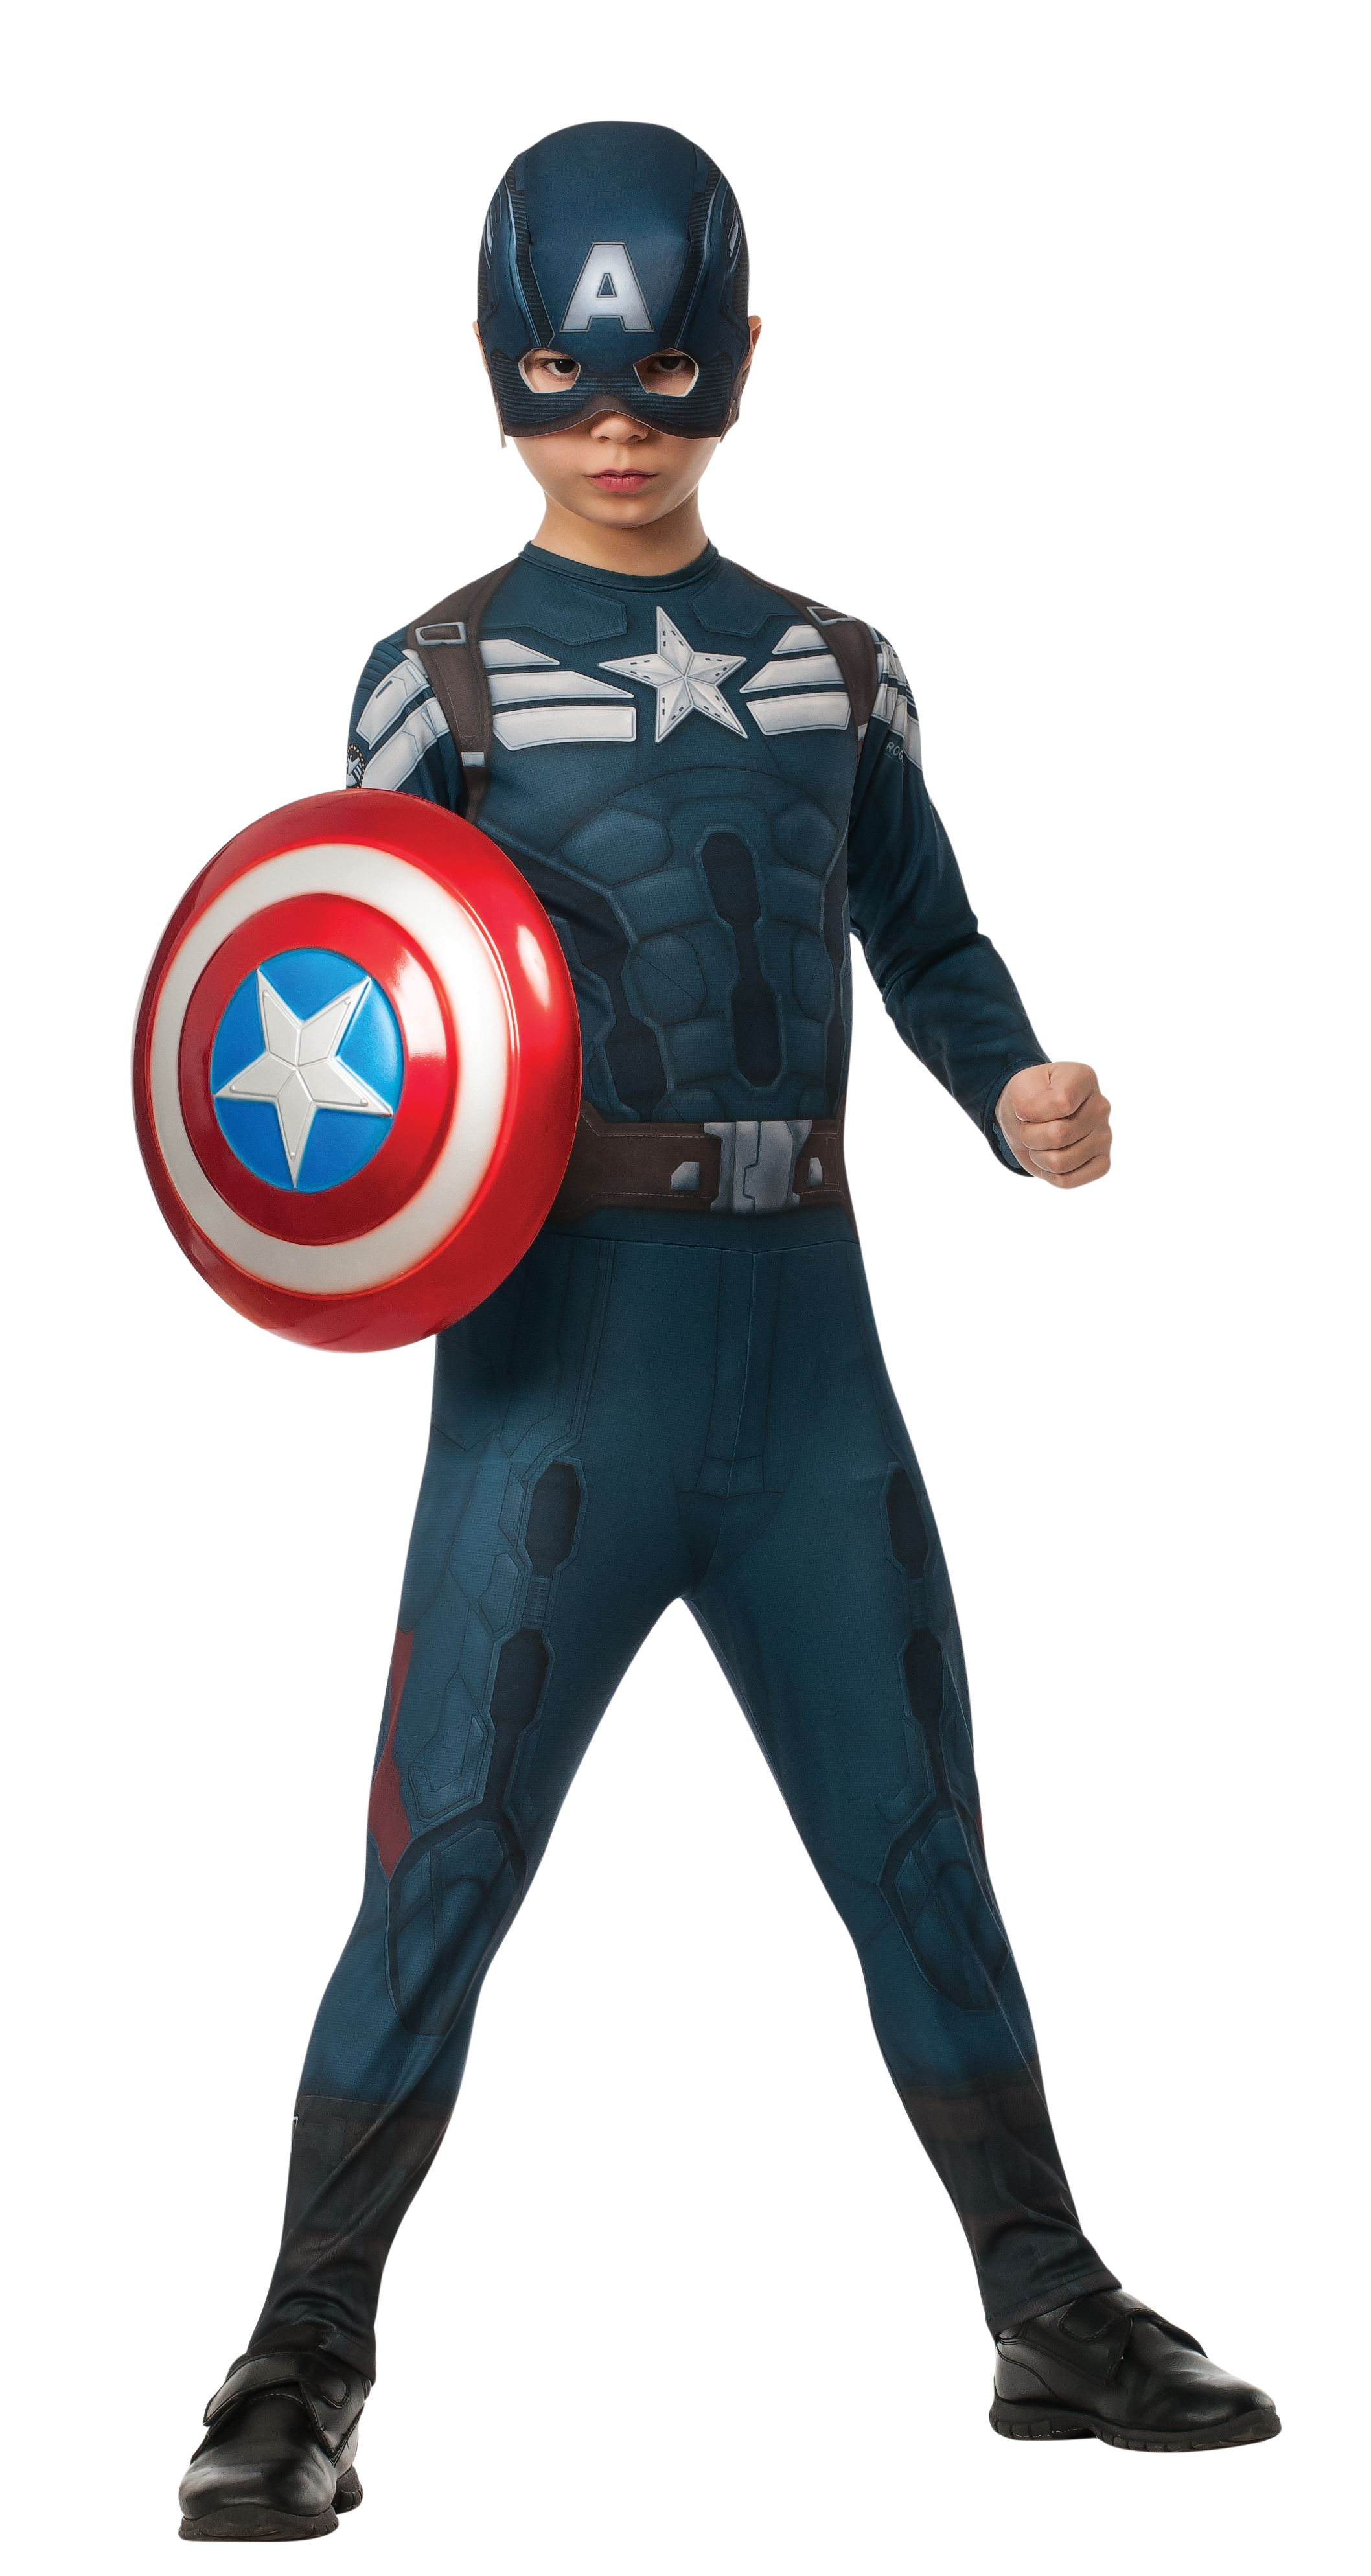 Kids Captain America Winter Soldier Boys Costume  sc 1 st  The Costume Land & Kids Captain America Winter Soldier Boys Costume | $20.99 | The ...